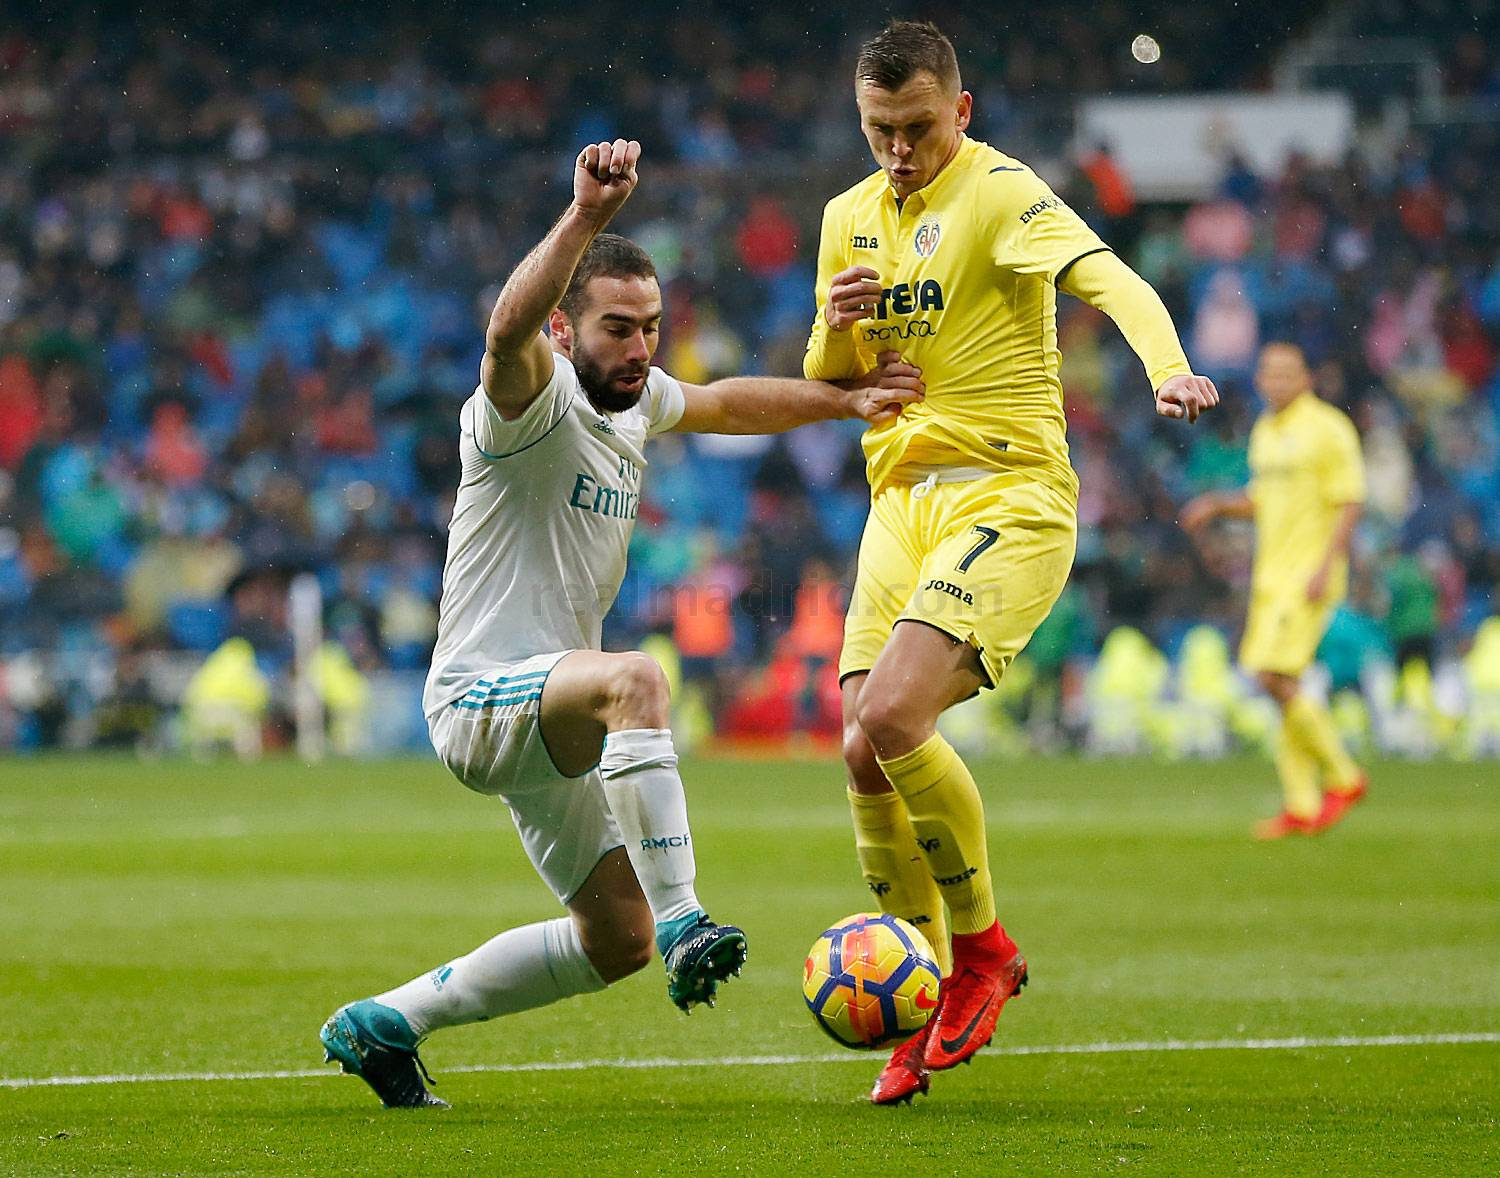 Real Madrid - Real Madrid - Villarreal - 13-01-2018